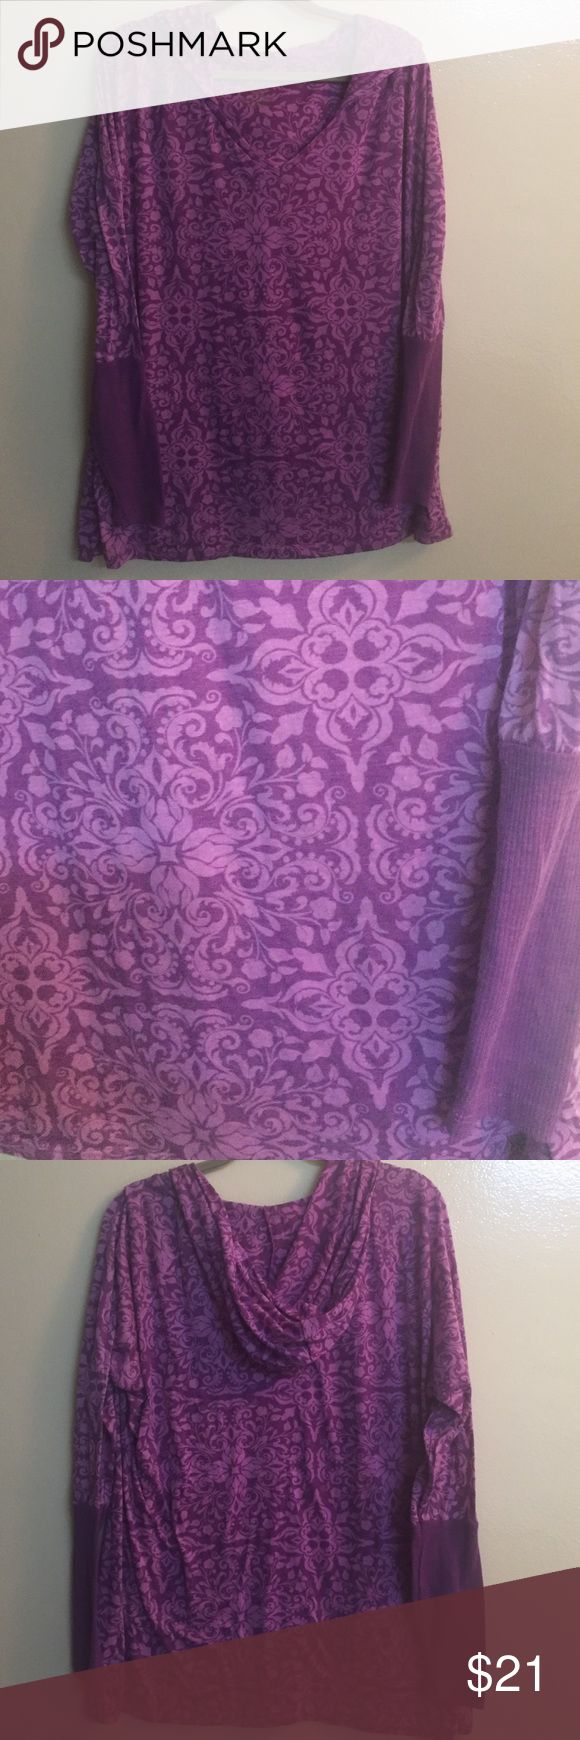 """Balance Collection Purple Women's Yoga Top This is the cutest, softest top of all! It is made of 65% Polyester and 35% Rayon. The design is beautiful, it is lightweight, has a hood and solid 8 """" cuff for easy yoga. It is gorgeous and in perfect condition. You will love it and I guarantee you will have the best Top in yoga class! Balance Collection Tops Sweatshirts & Hoodies"""